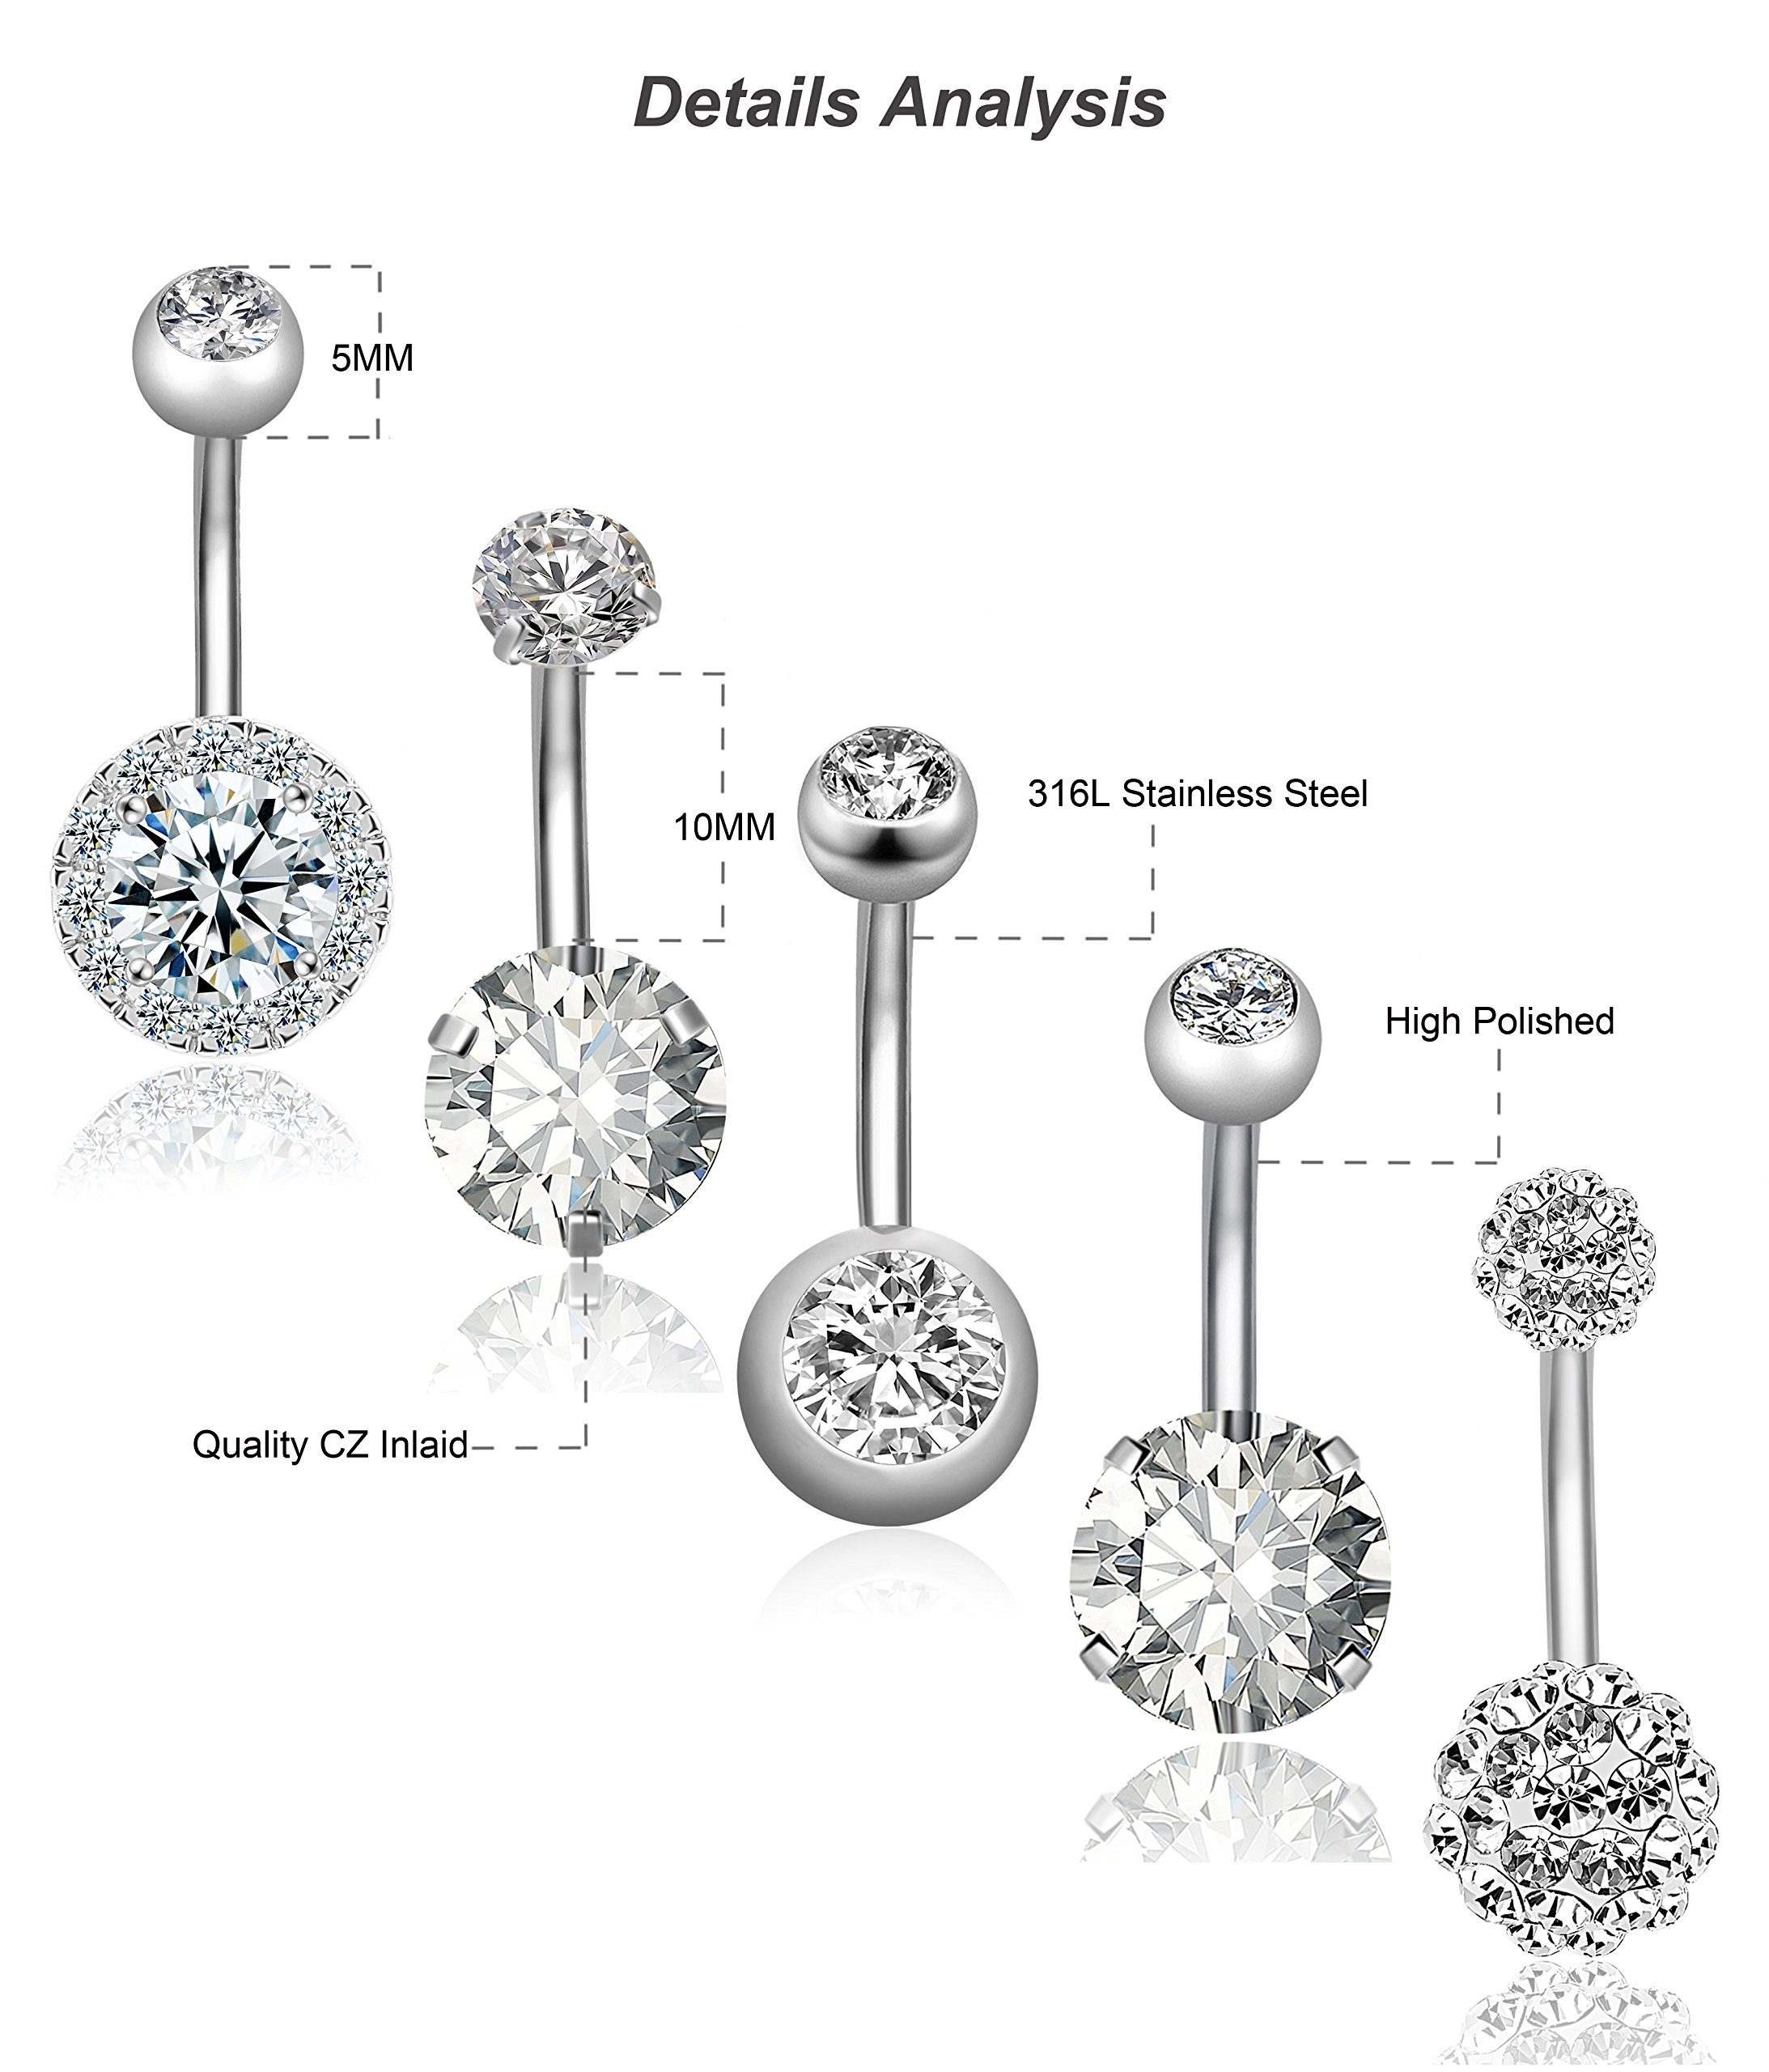 REVOLIA 5Pcs 14G Stainless Steel Belly Button Rings for Women Girls Navel Rings CZ Body Piercing S by REVOLIA (Image #5)